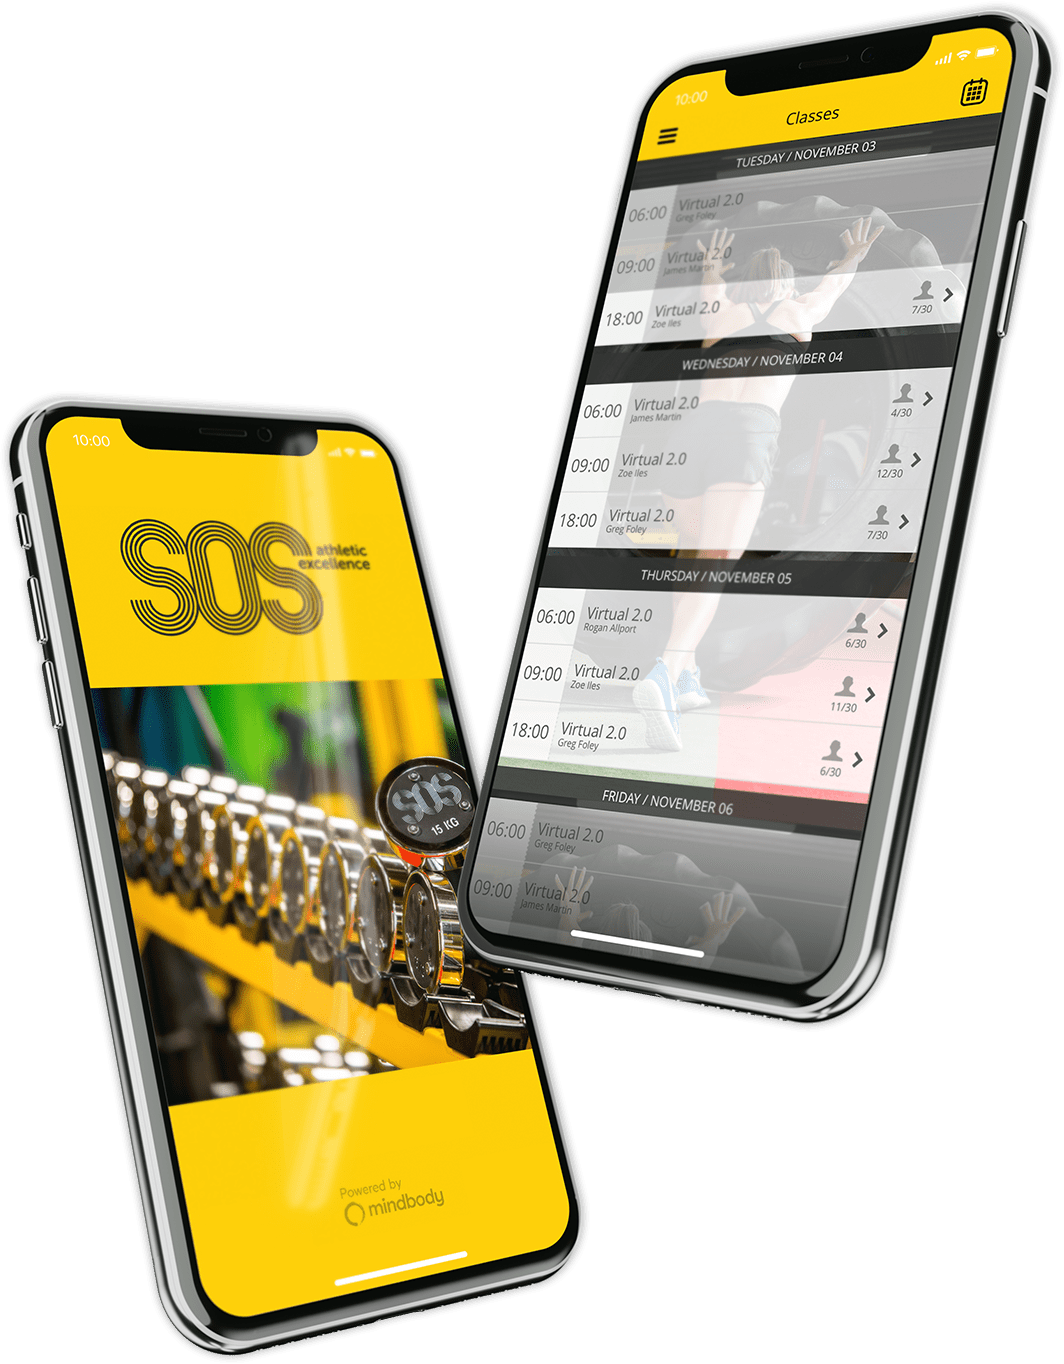 SOS Athletic Excellence App Displayed on iPhone 8 Plus